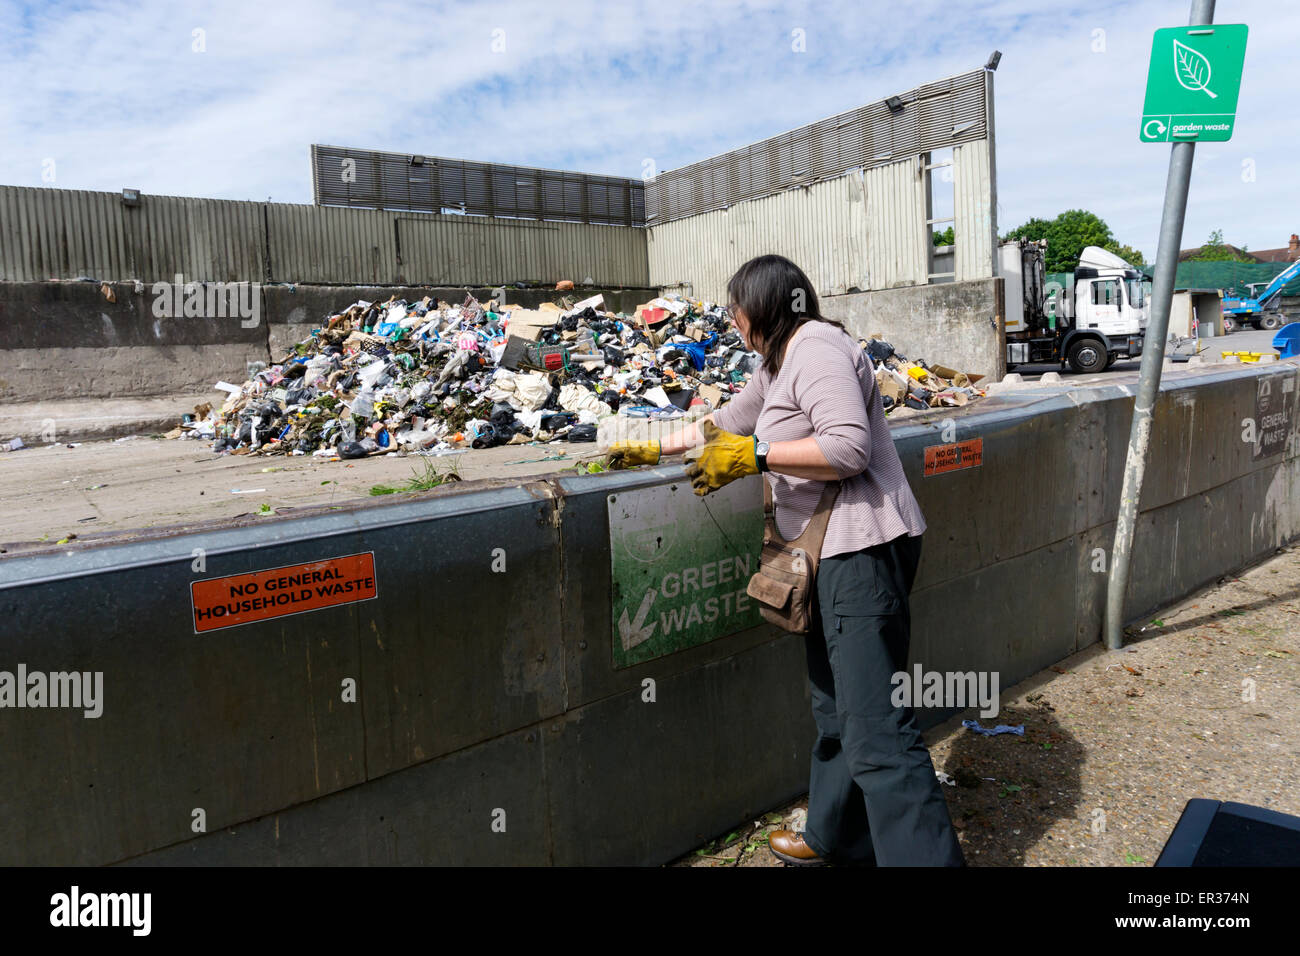 A woman dumping green garden waste at a municipal tip or recycling centre. - Stock Image